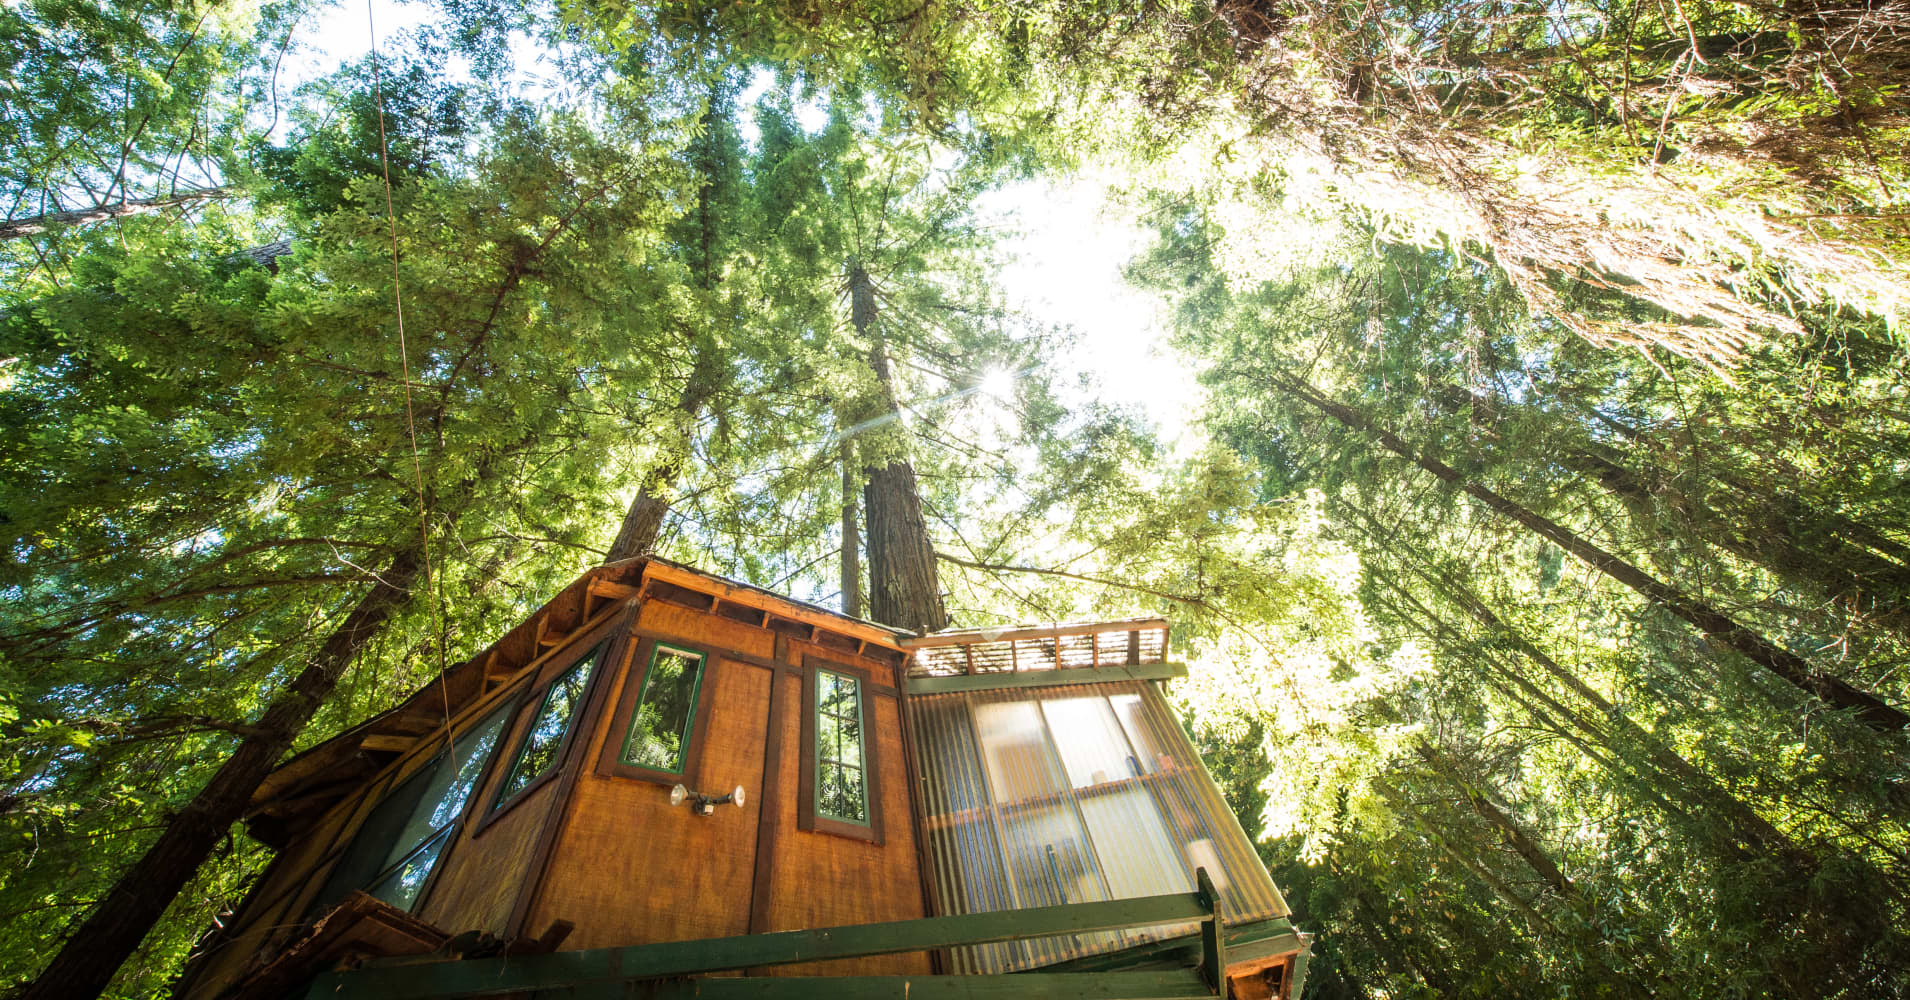 Spend a weekend glamping in a luxury treehouse nestled among the Sequoia forest.